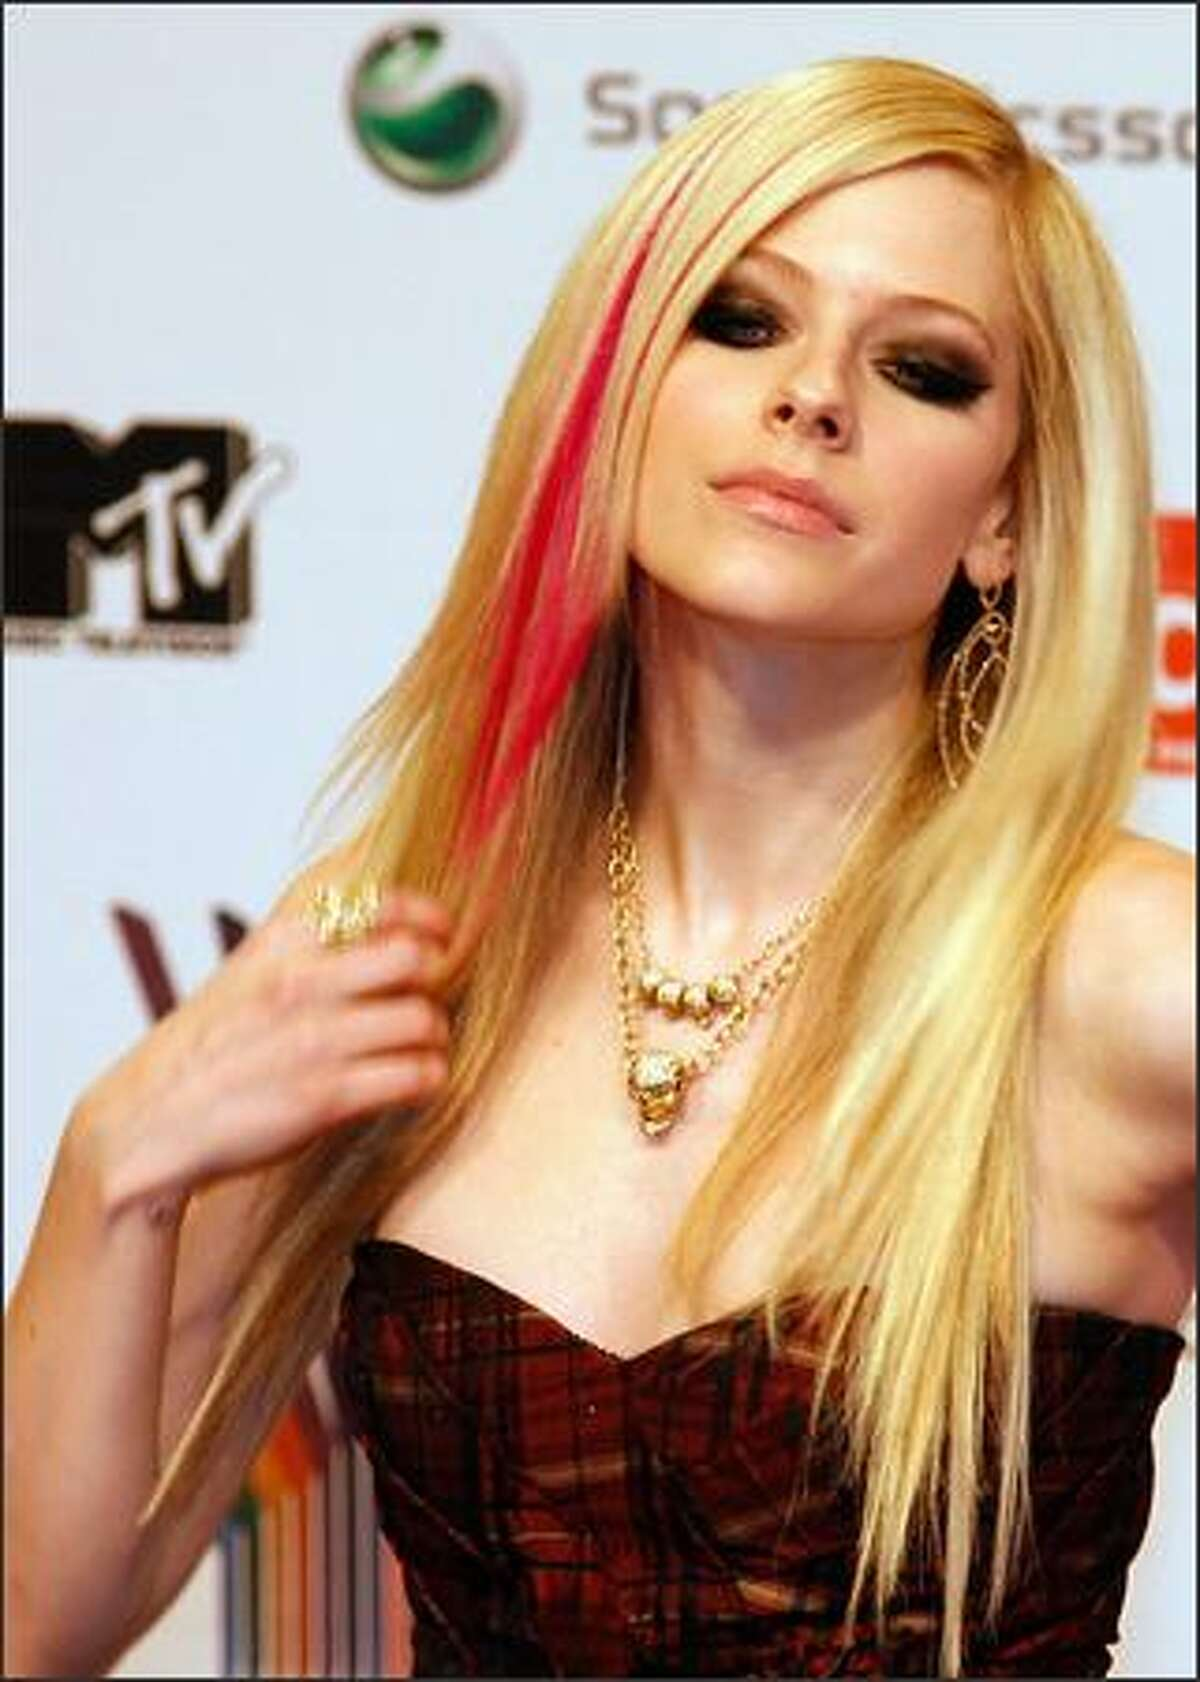 Canadian singer Avril Lavigne poses for photographers as she arrives for the MTV Europe Music Awards.